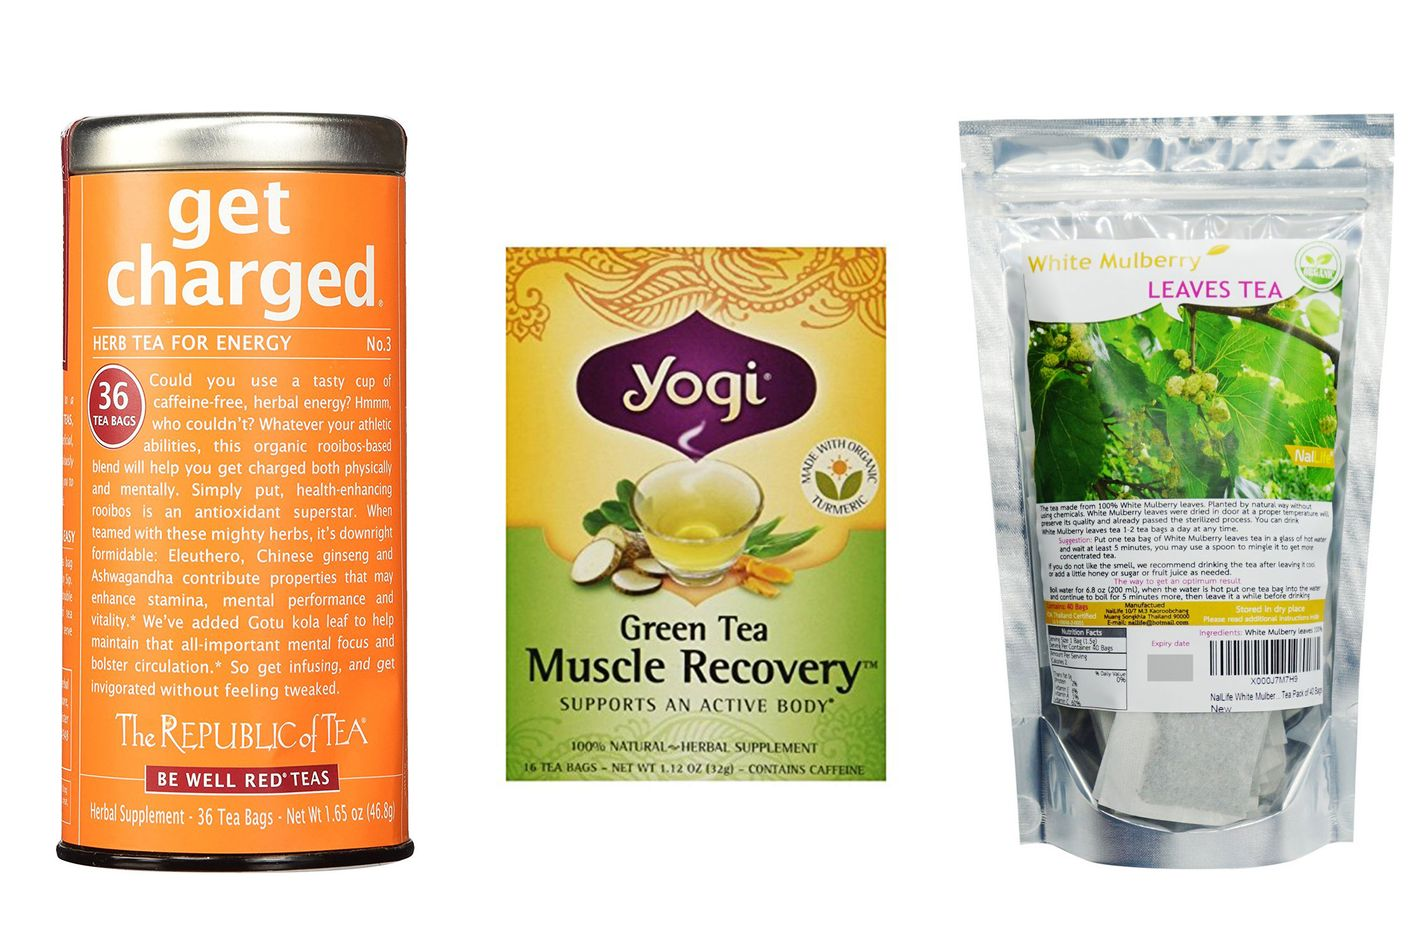 Yogi Green Tea Muscle Recovery